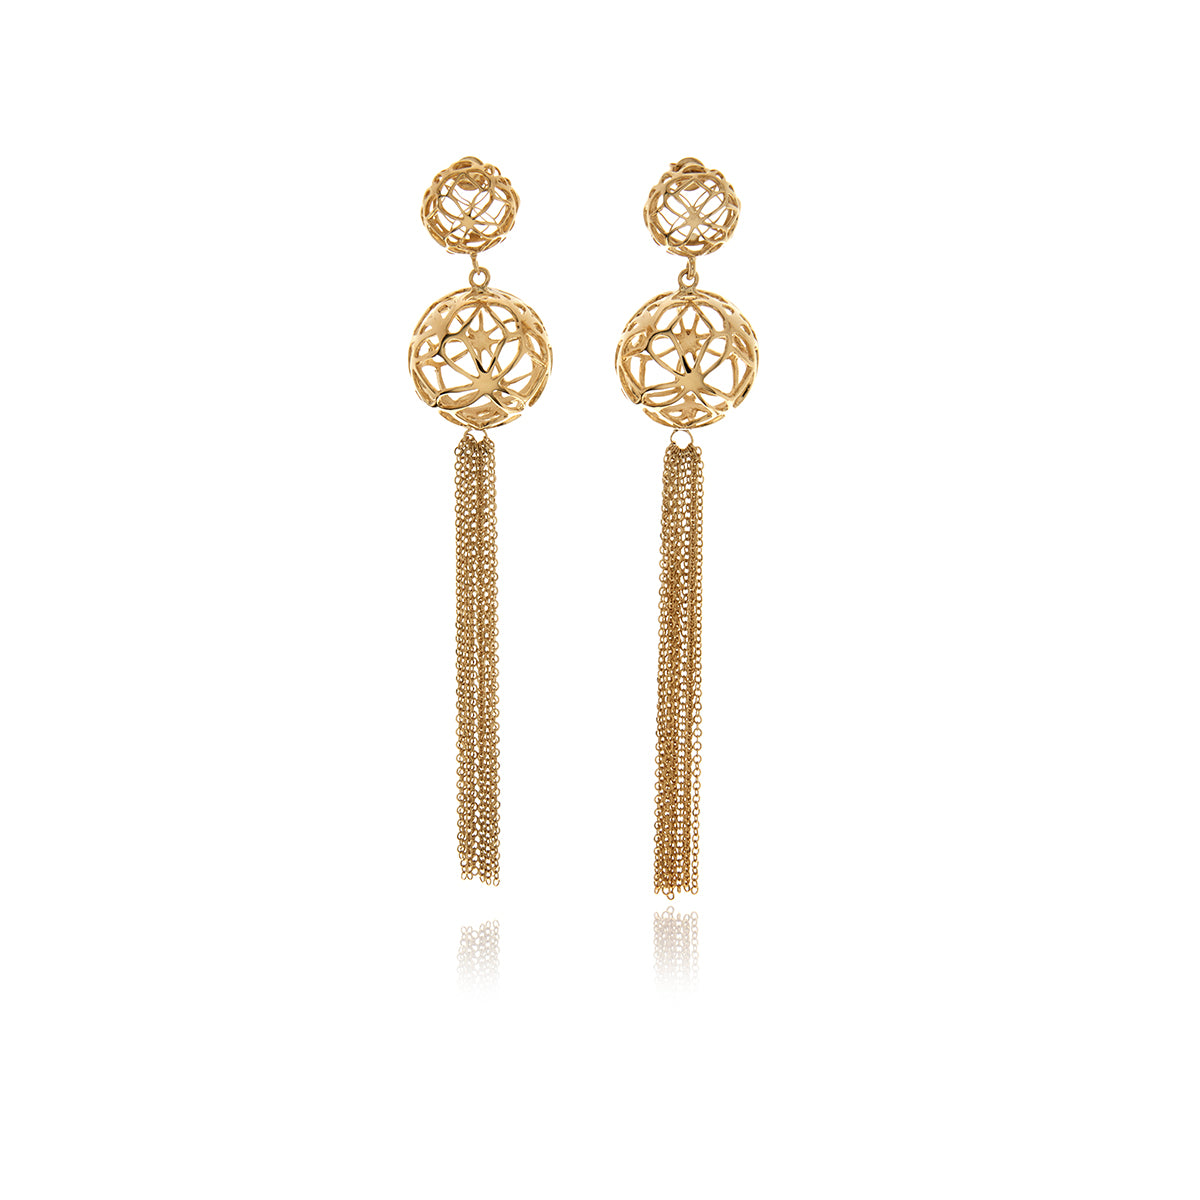 Signature Sphere Gold Earrings